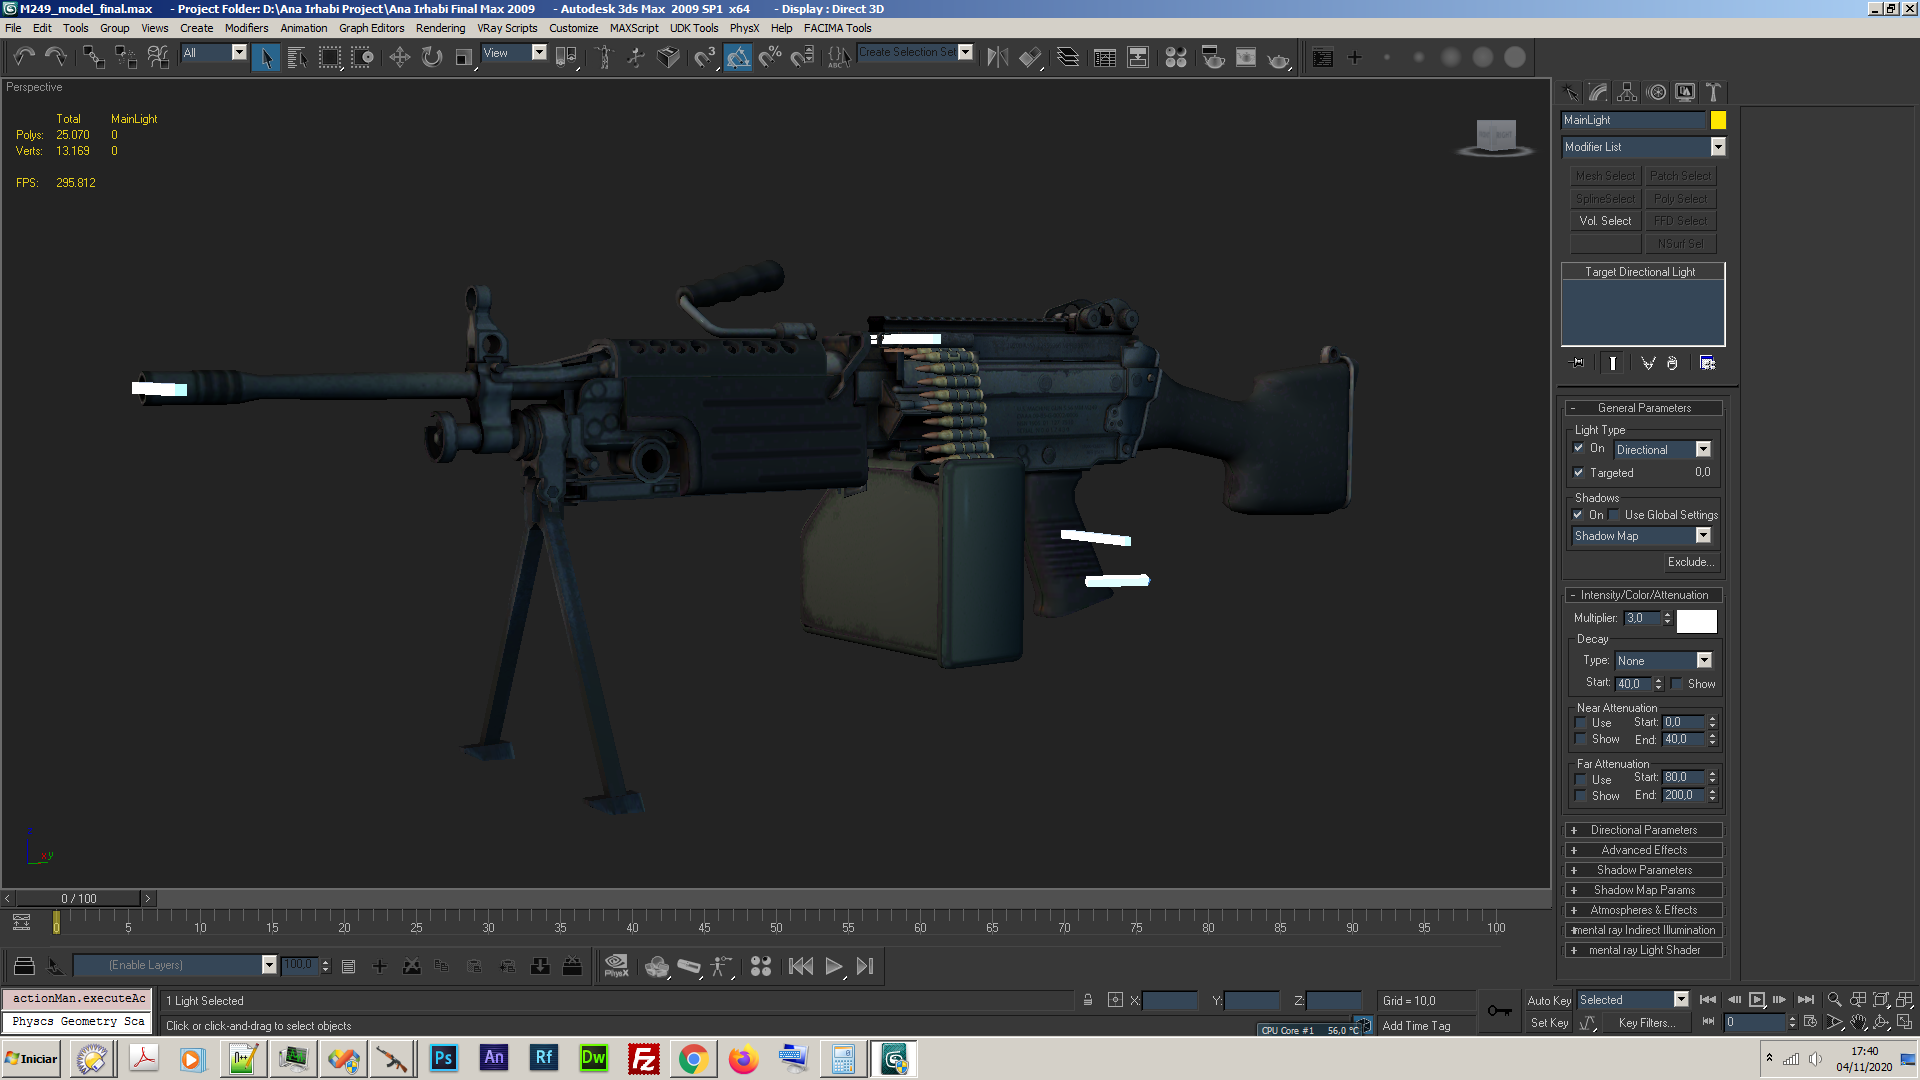 M249_1.png